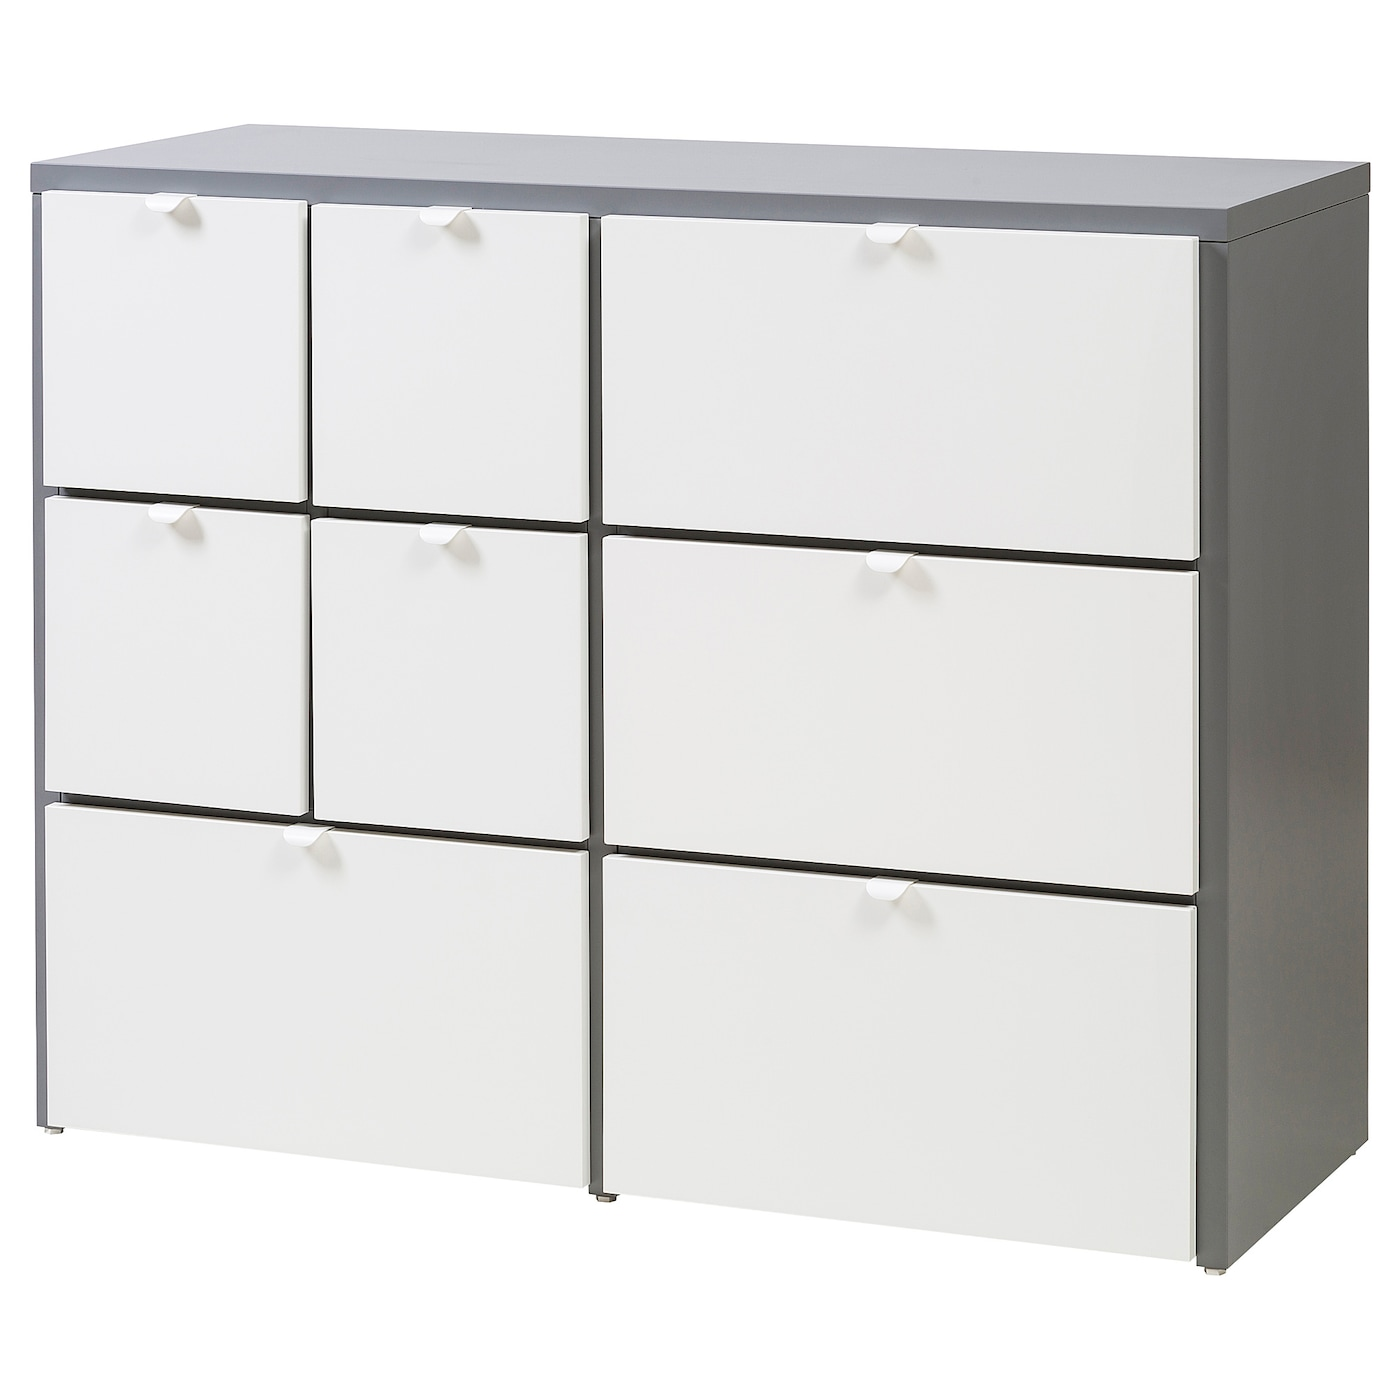 IKEA VISTHUS chest of 8 drawers The bottom drawers have castors and therefore easy to move about.